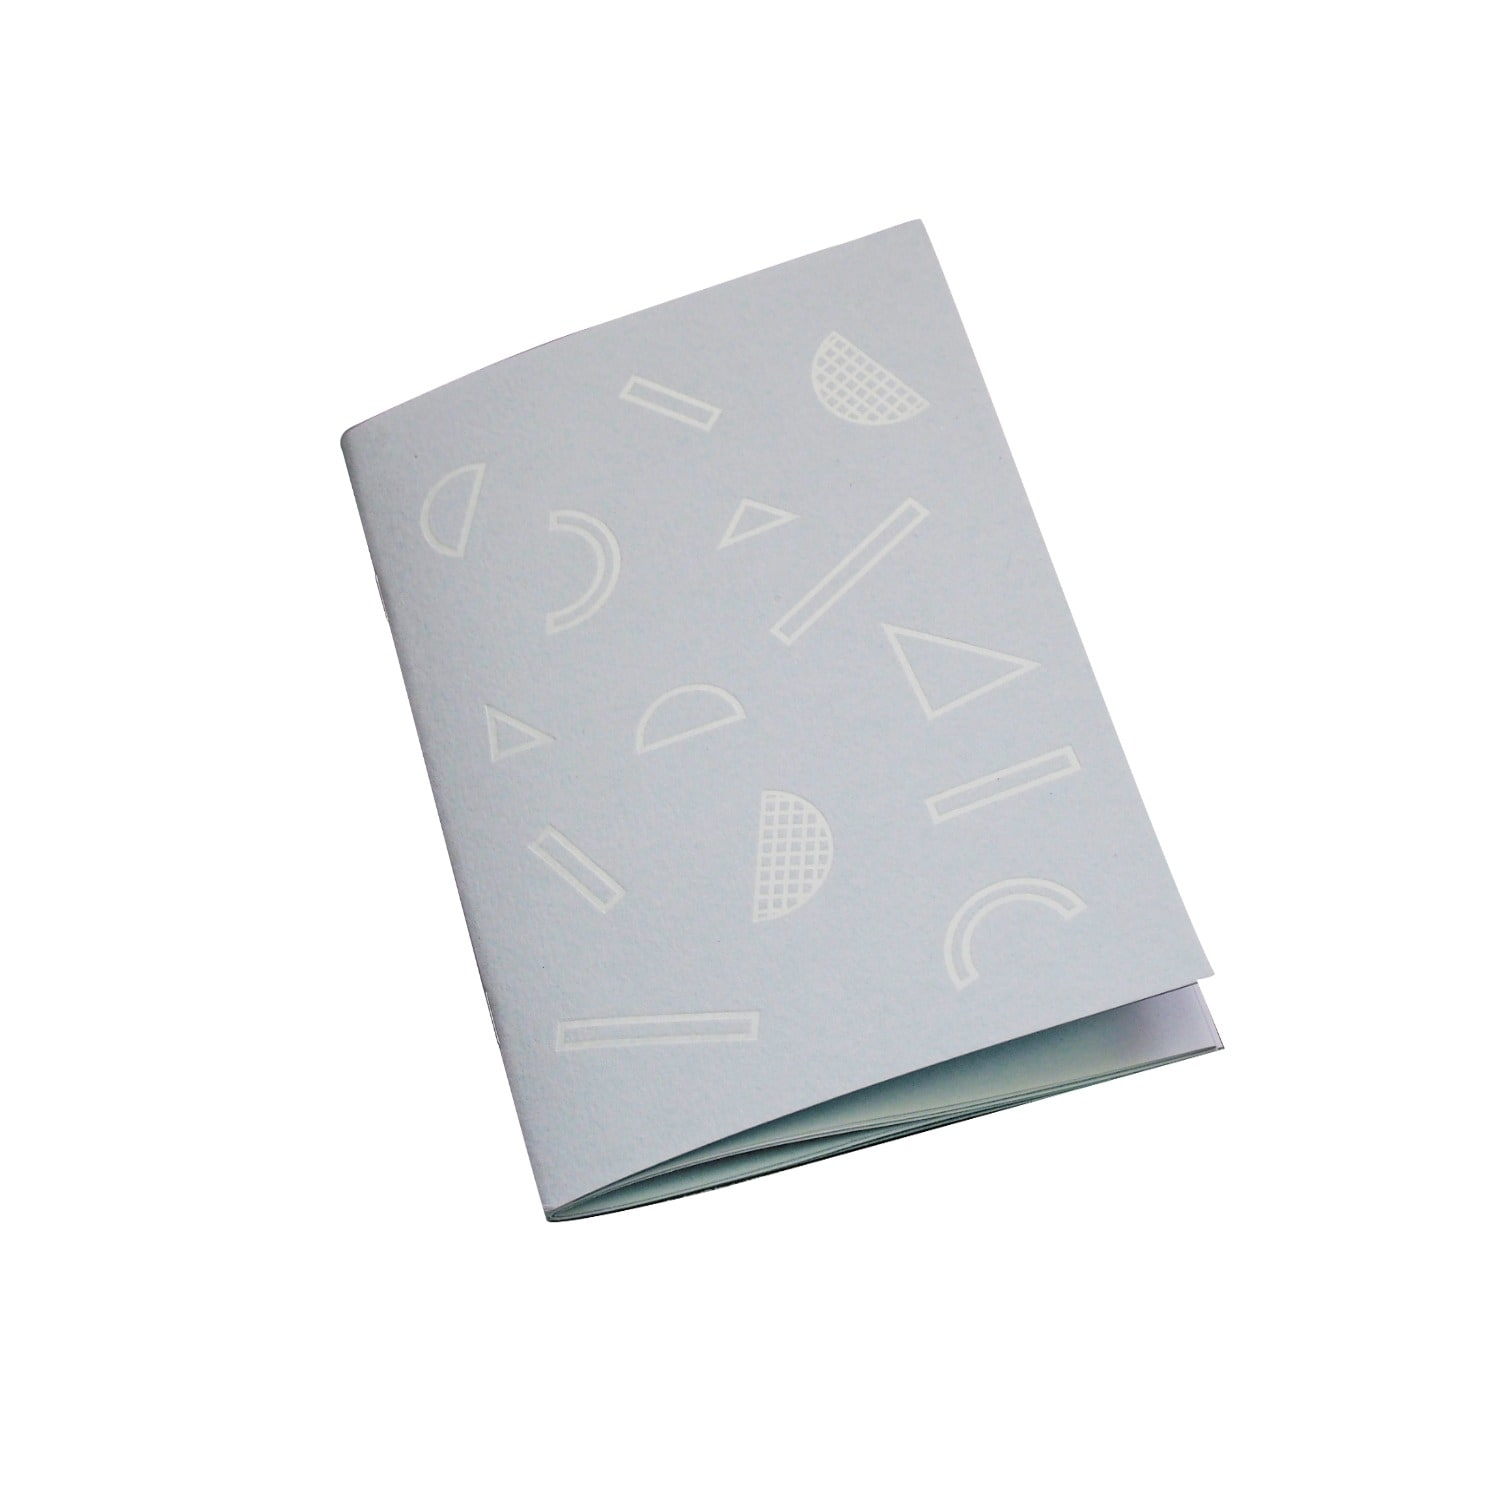 Buy Nylon Sky – Foil Printed A6 Notebook Grey Before Special Offer Ends